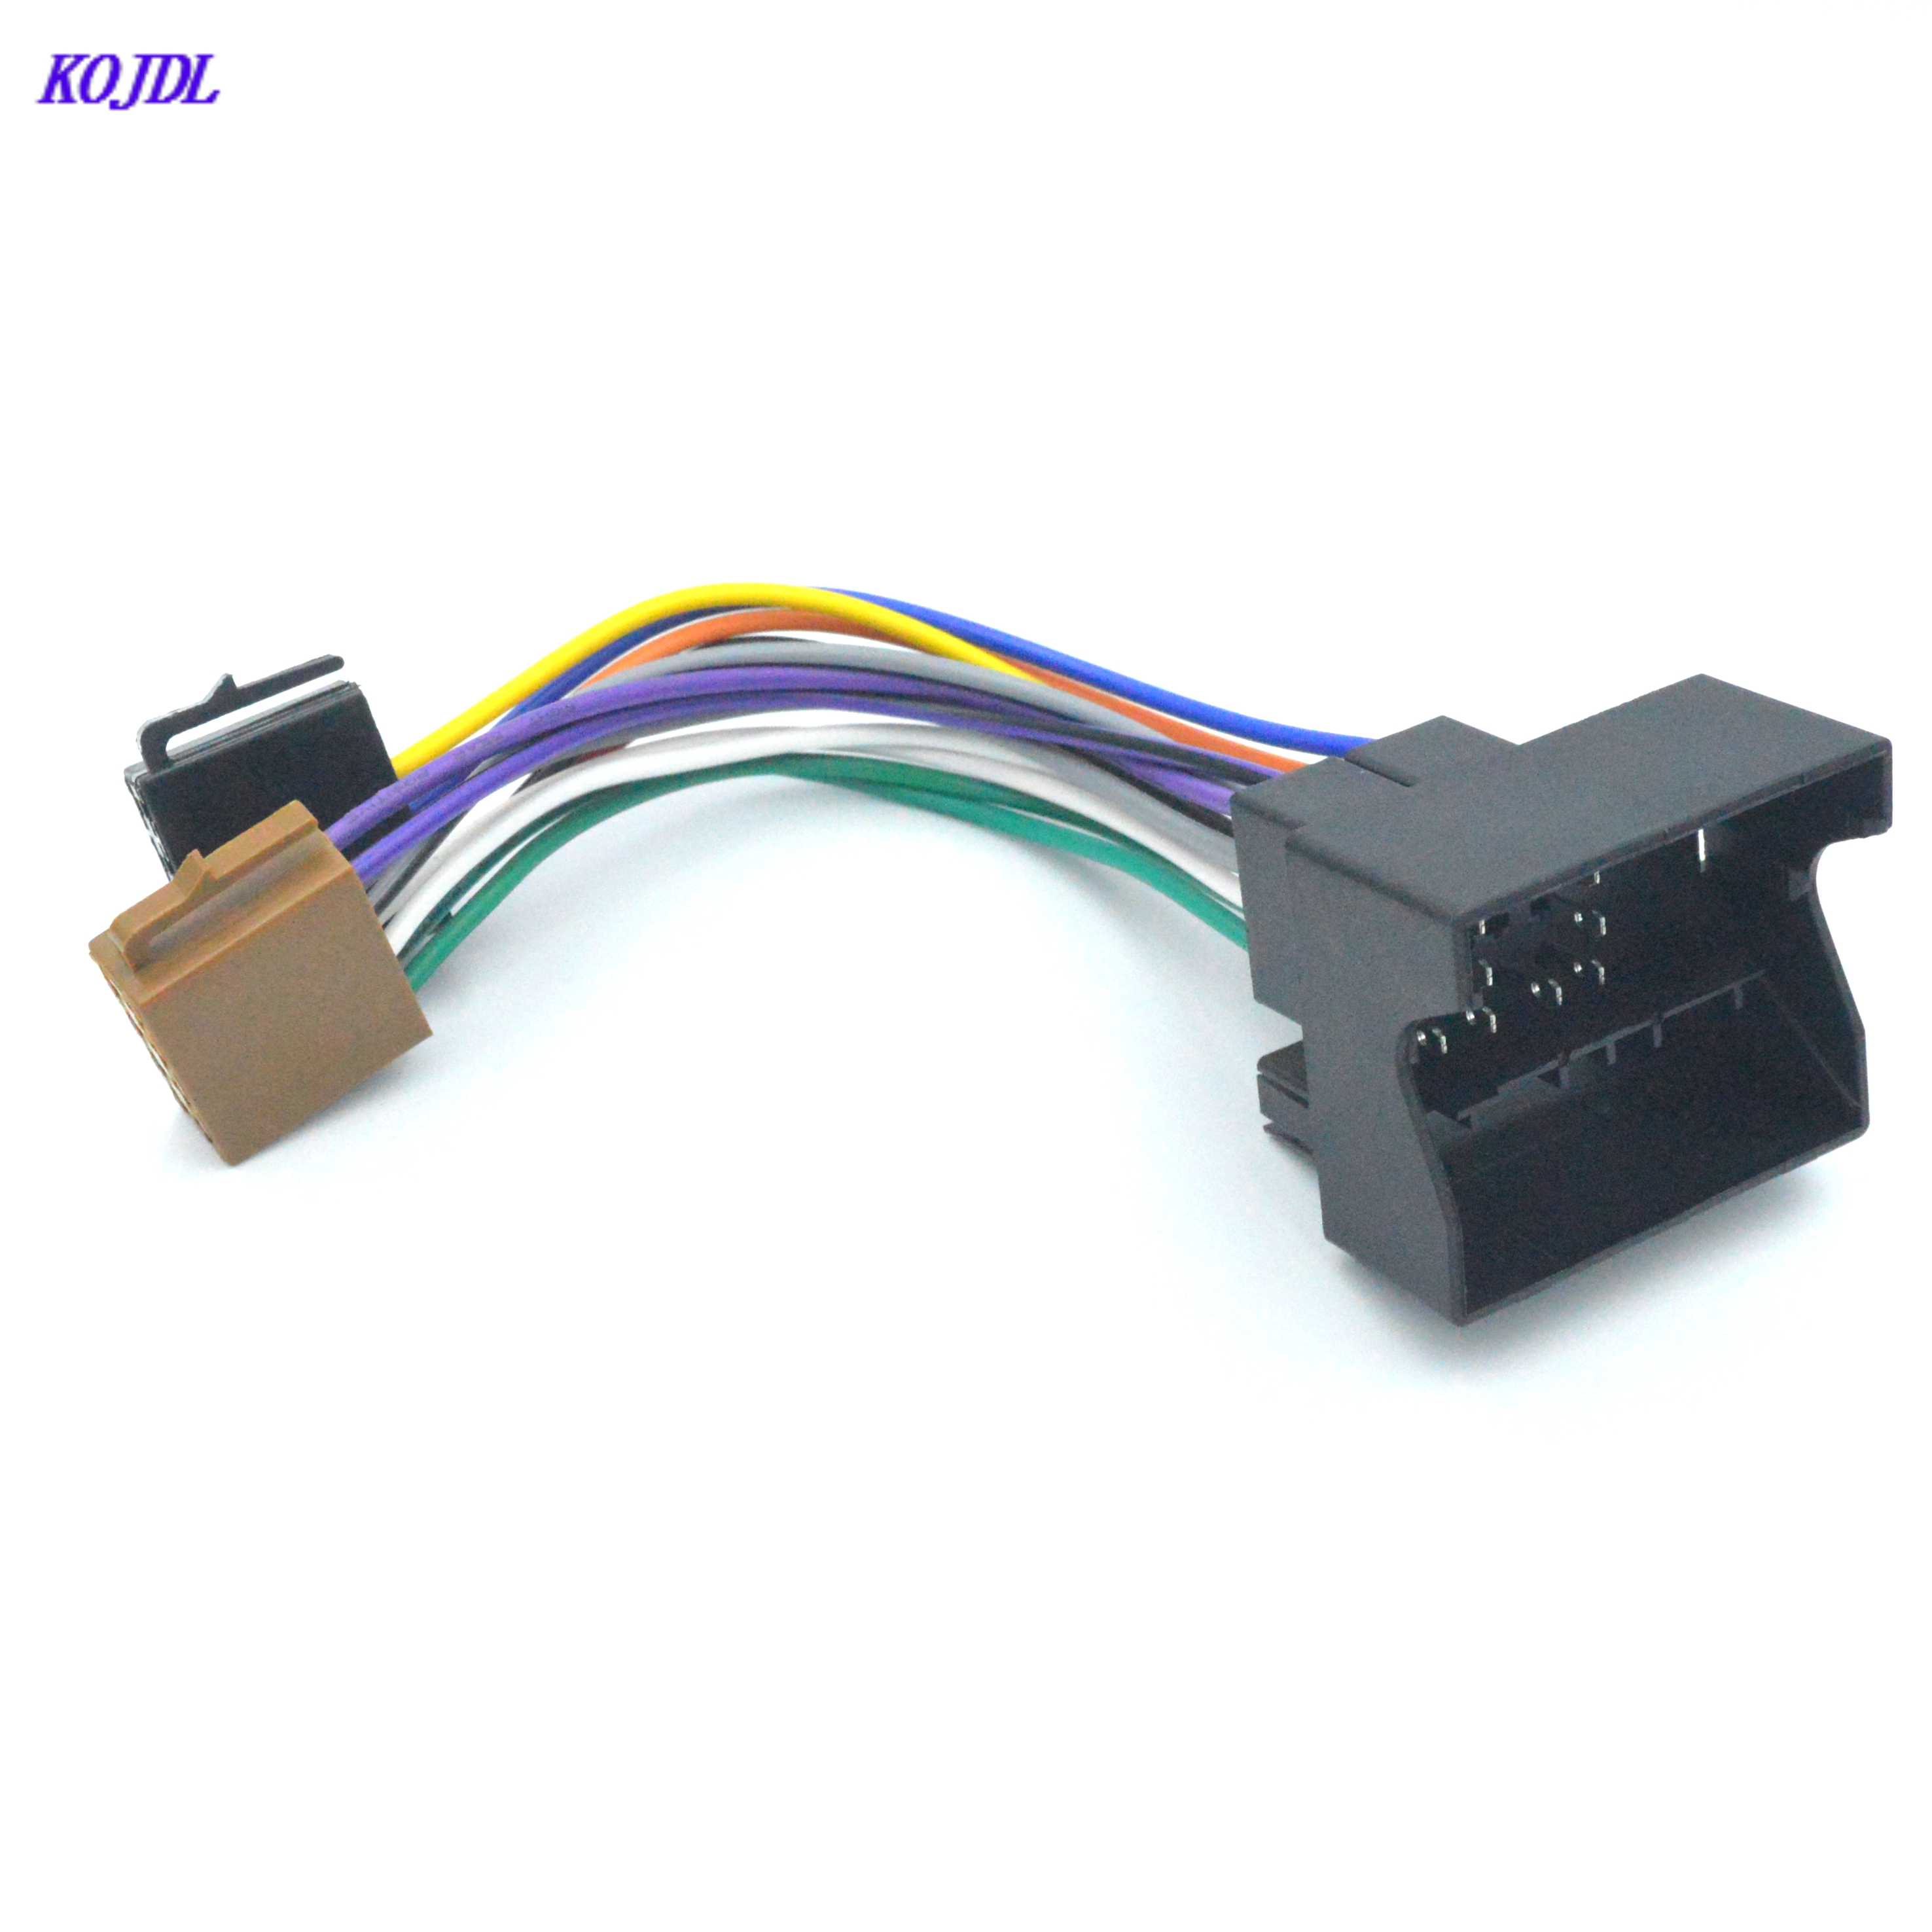 mini cooper steering wheel wiring harness car iso stereo wiring harness adaptor audio iso head for bmw mini  stereo wiring harness adaptor audio iso